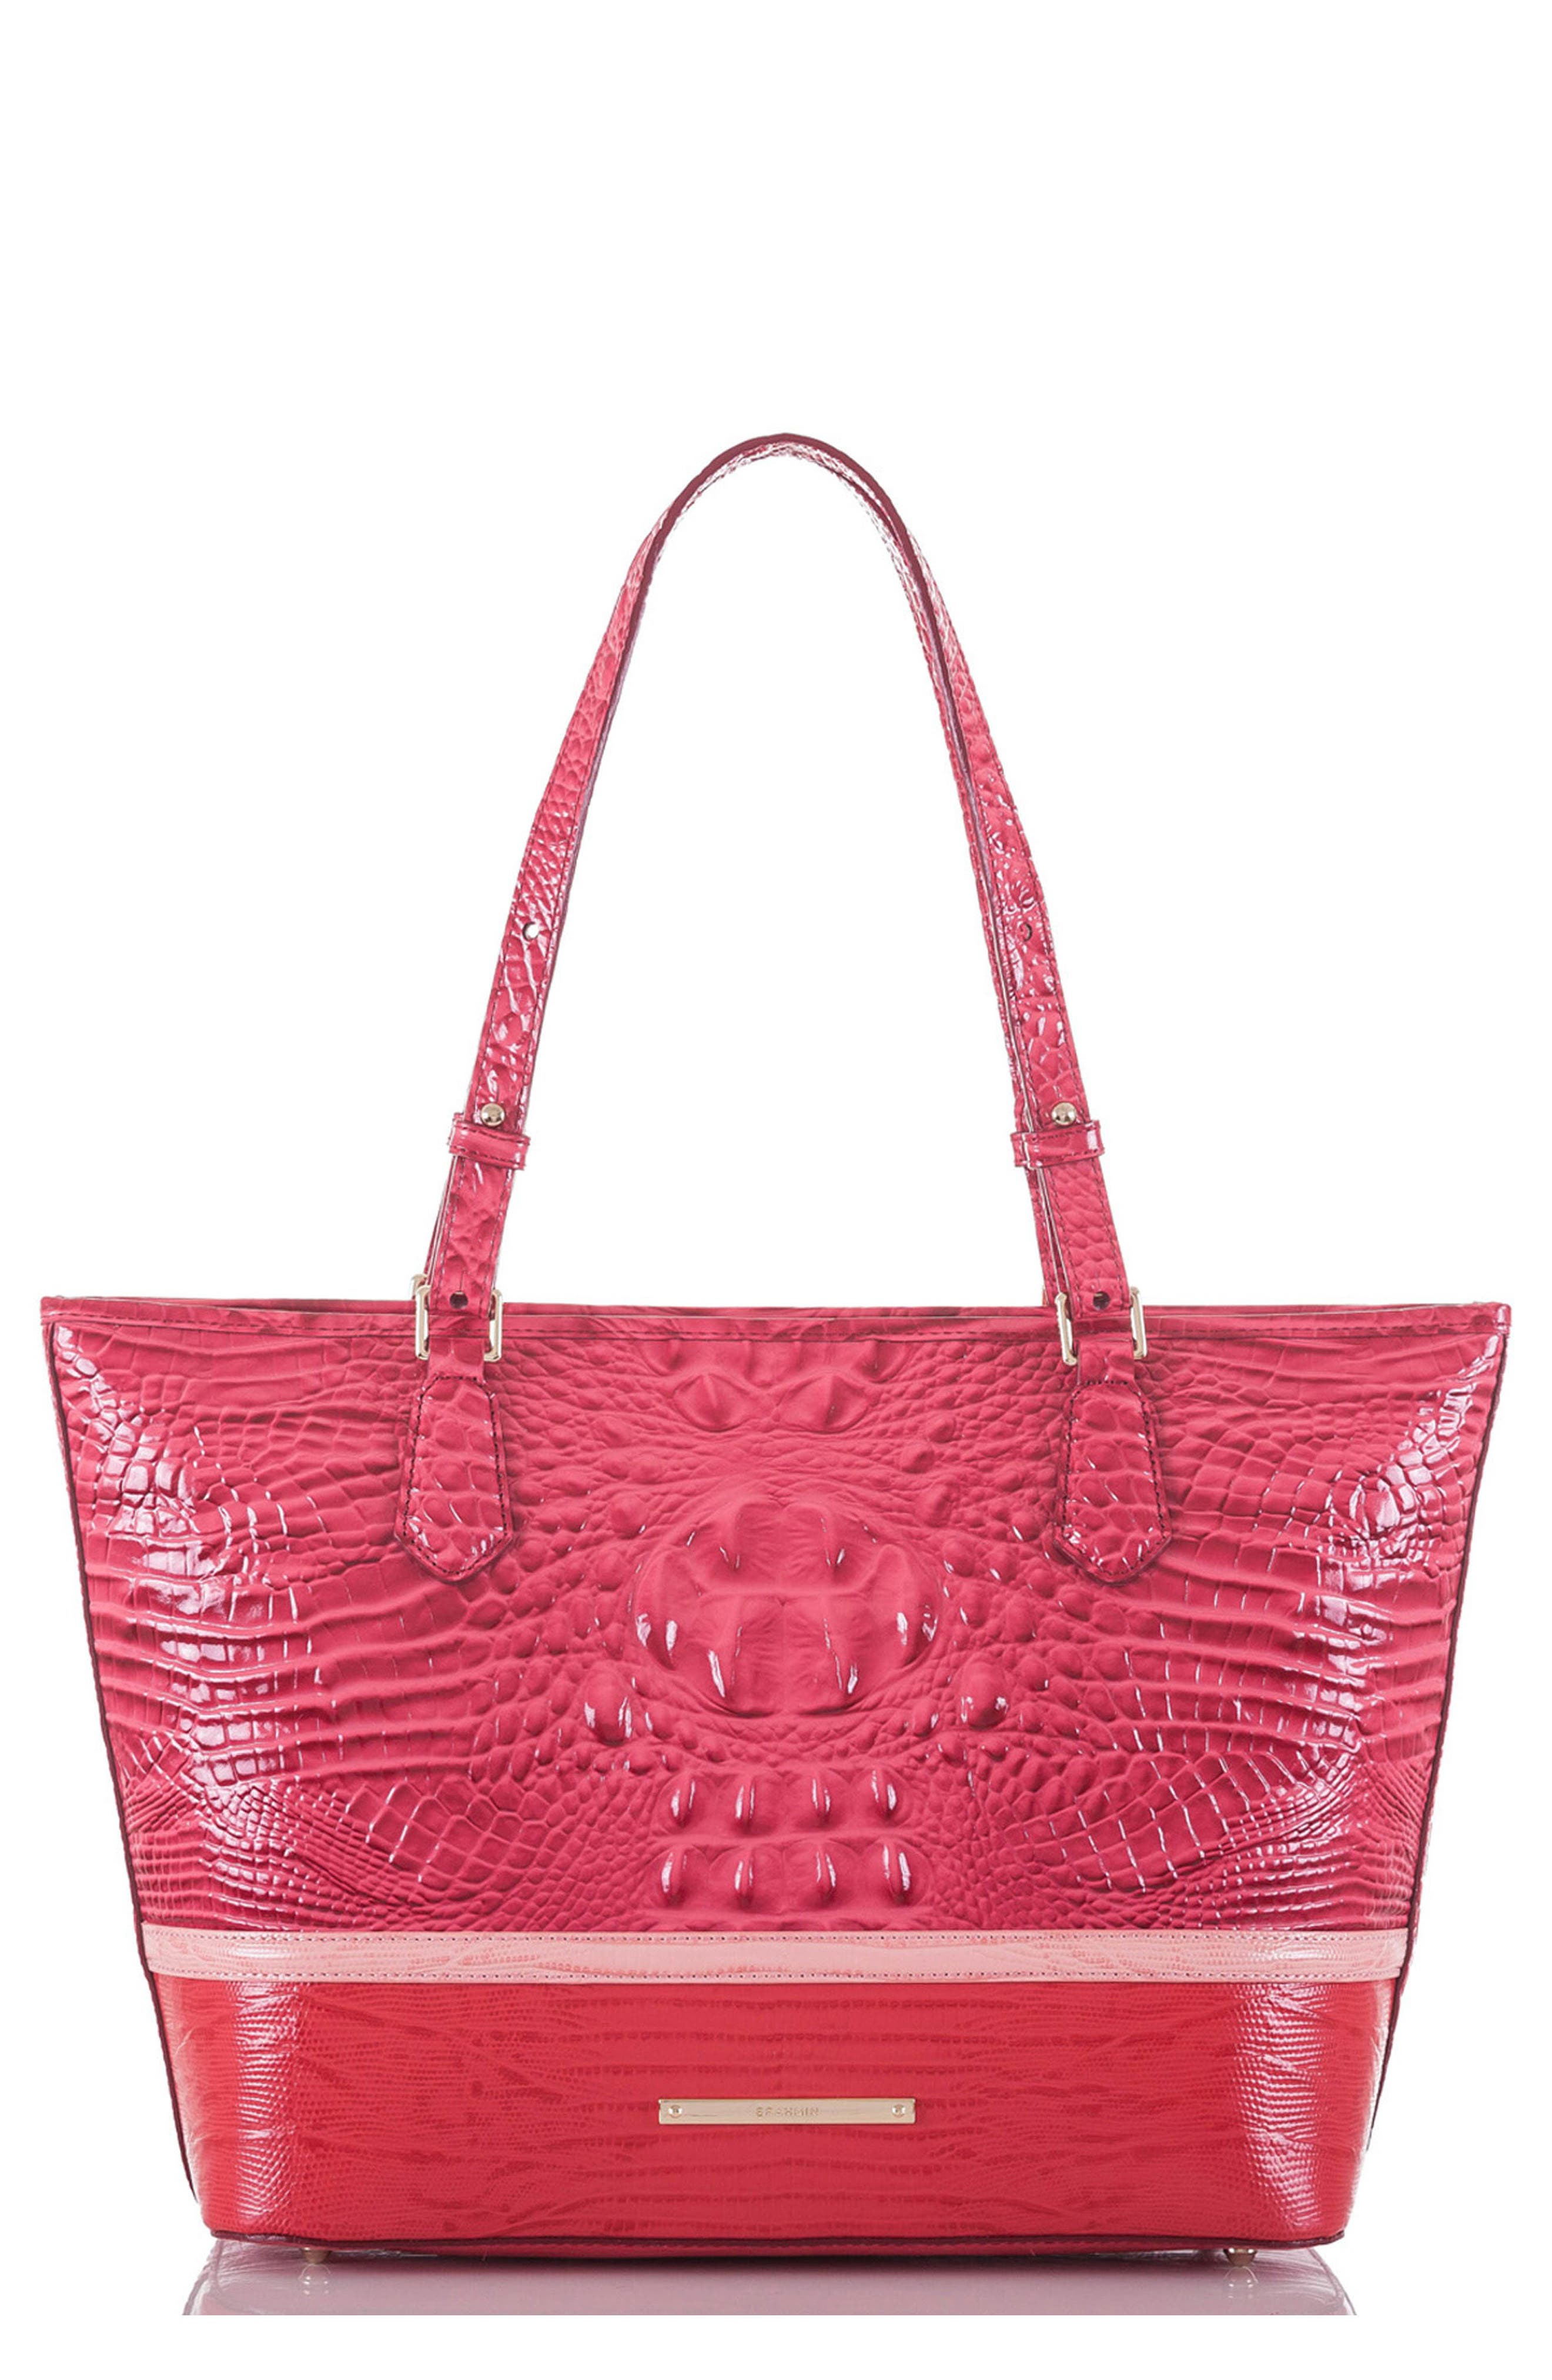 Medium Asher Embossed Leather Tote,                             Main thumbnail 1, color,                             650